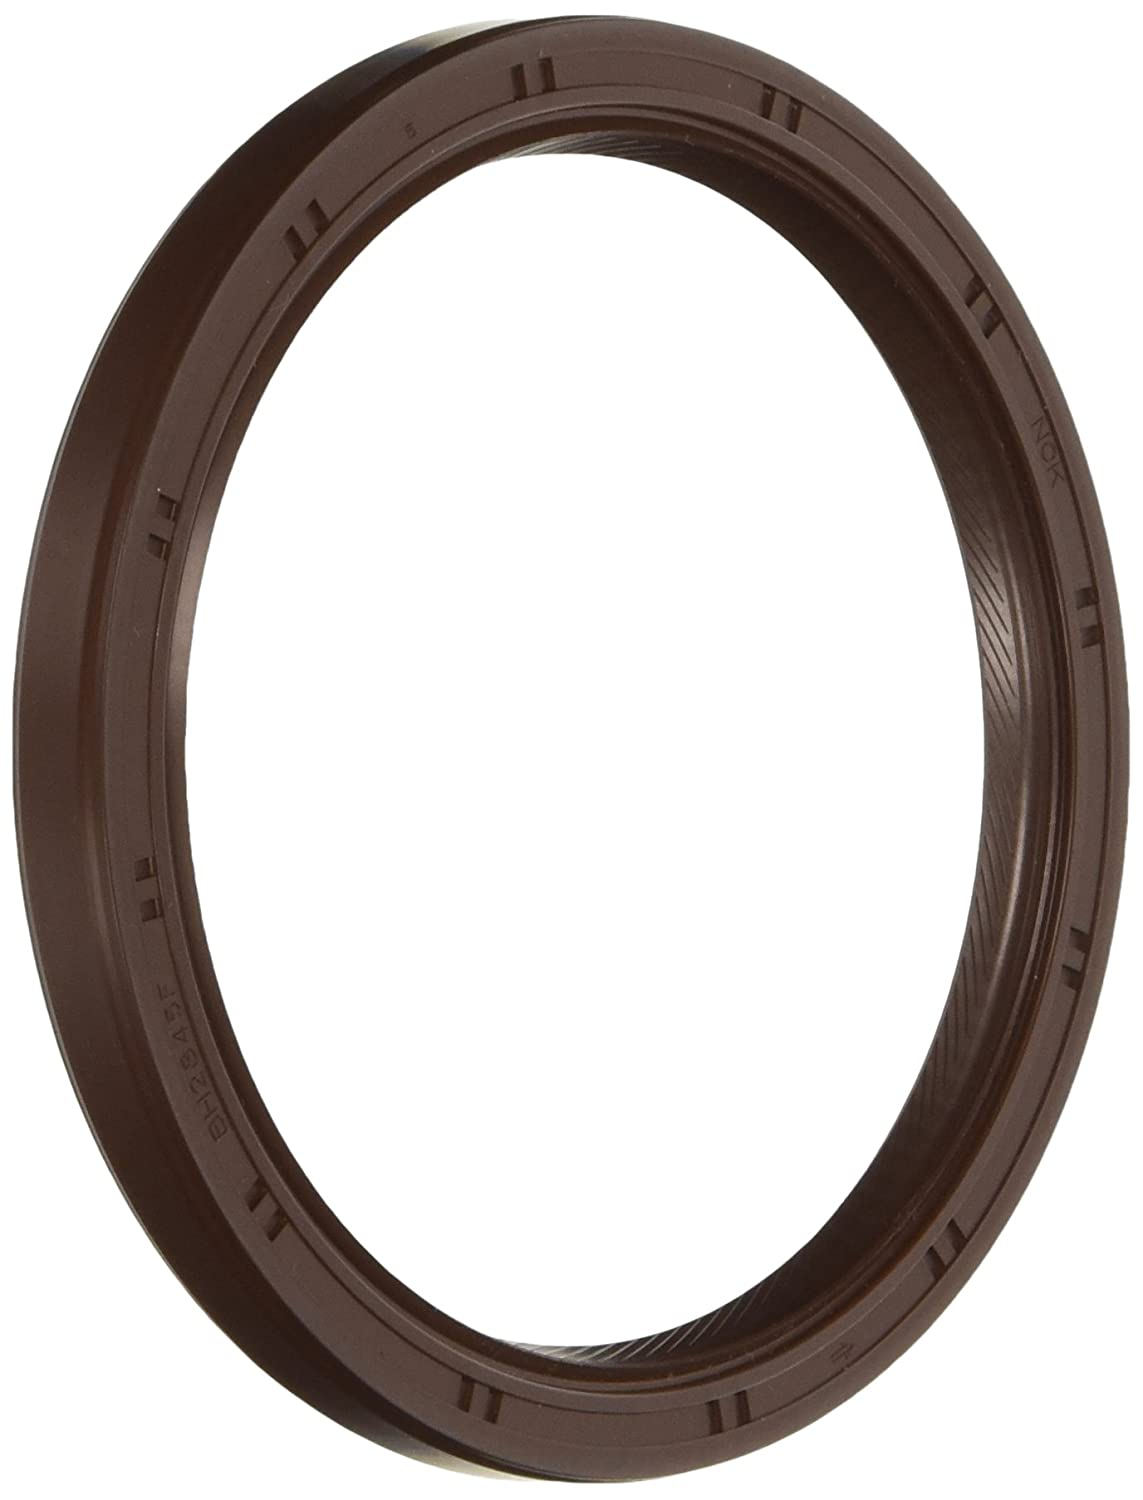 Mazda BP05-11-312 Engine Crankshaft Seal